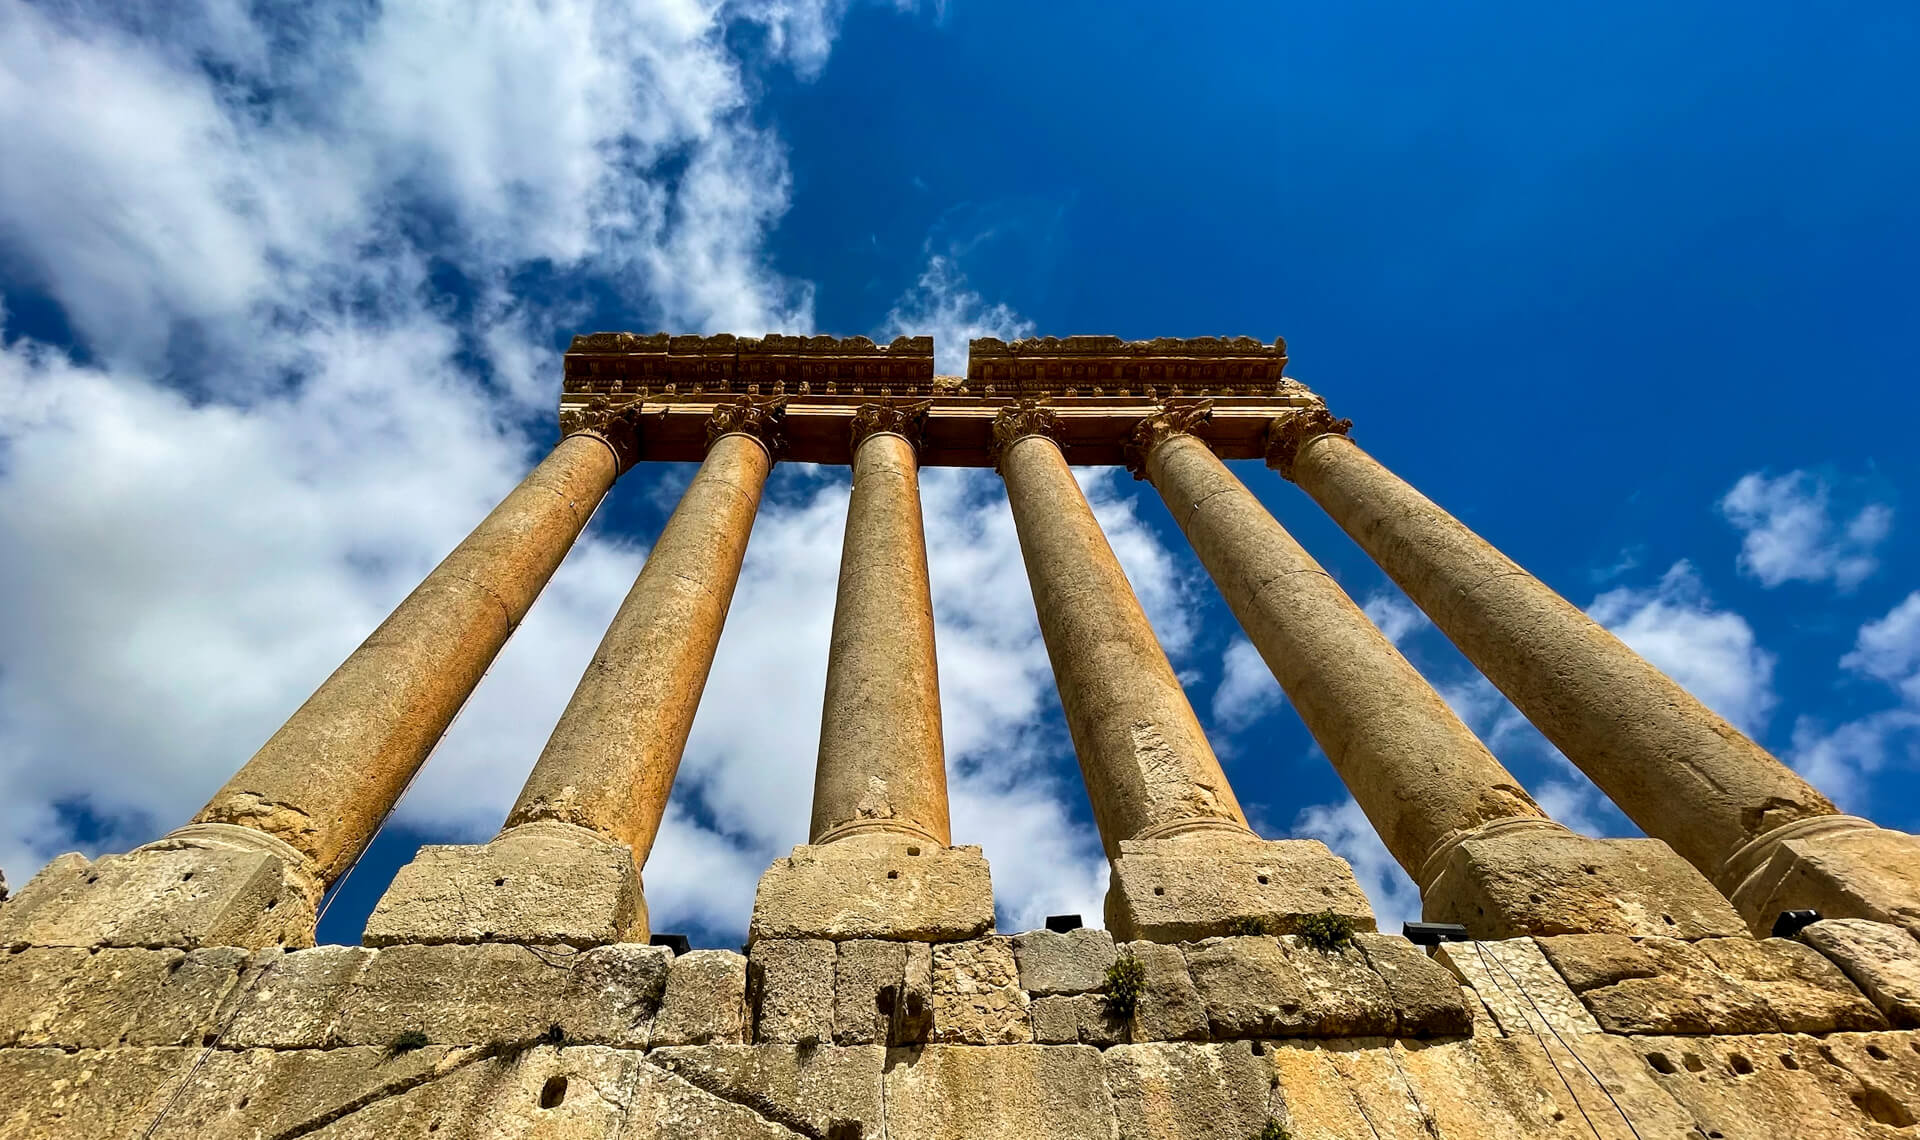 The colossal pillars of the Temple of Jupiter, once the largest Roman temple in the world